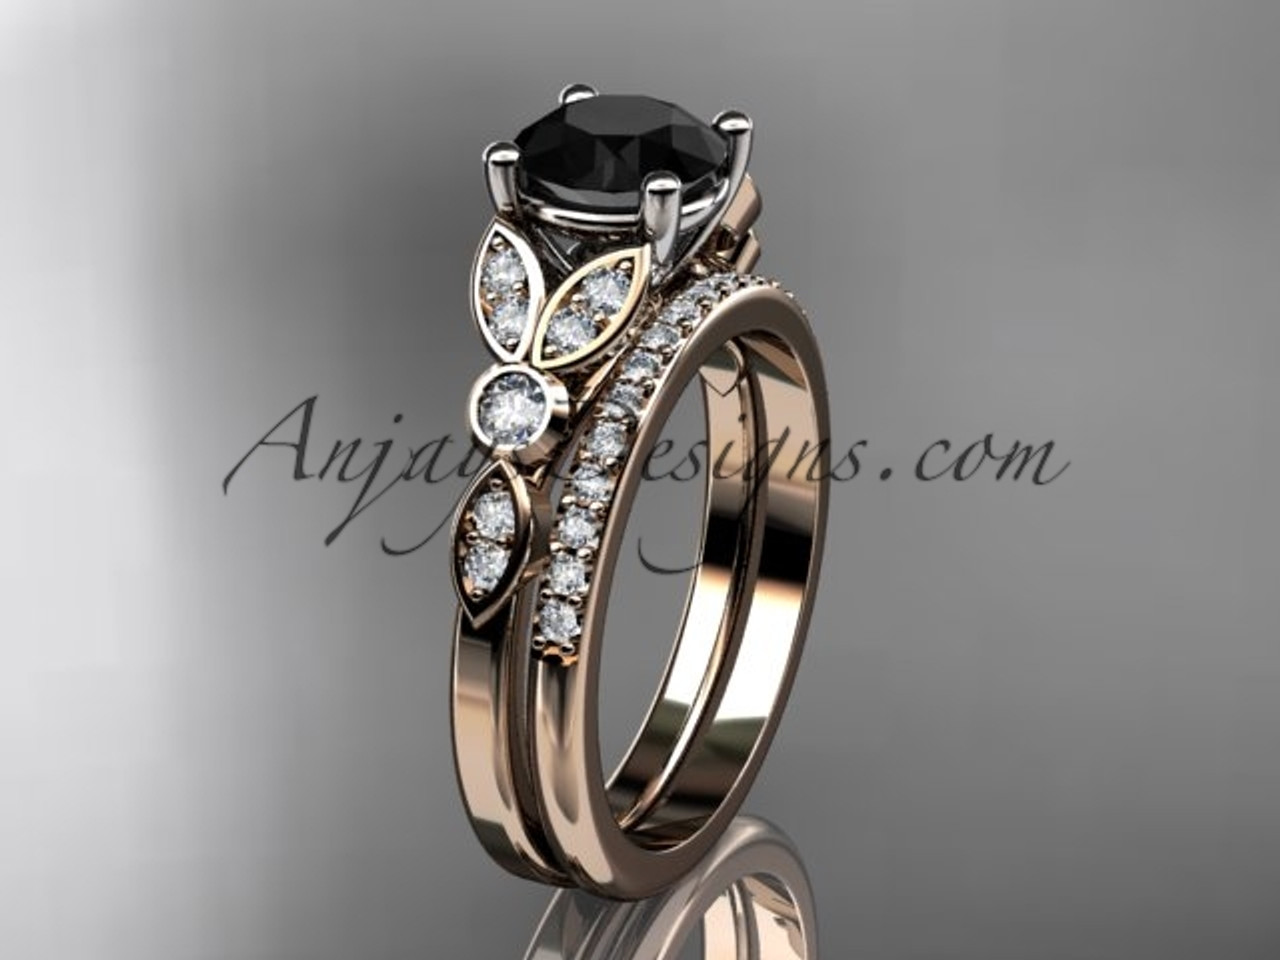 quality black wedding anel rose rings high for gold women fashion jewelry toq crystal female color ring product engagement stone ustar store bijoux